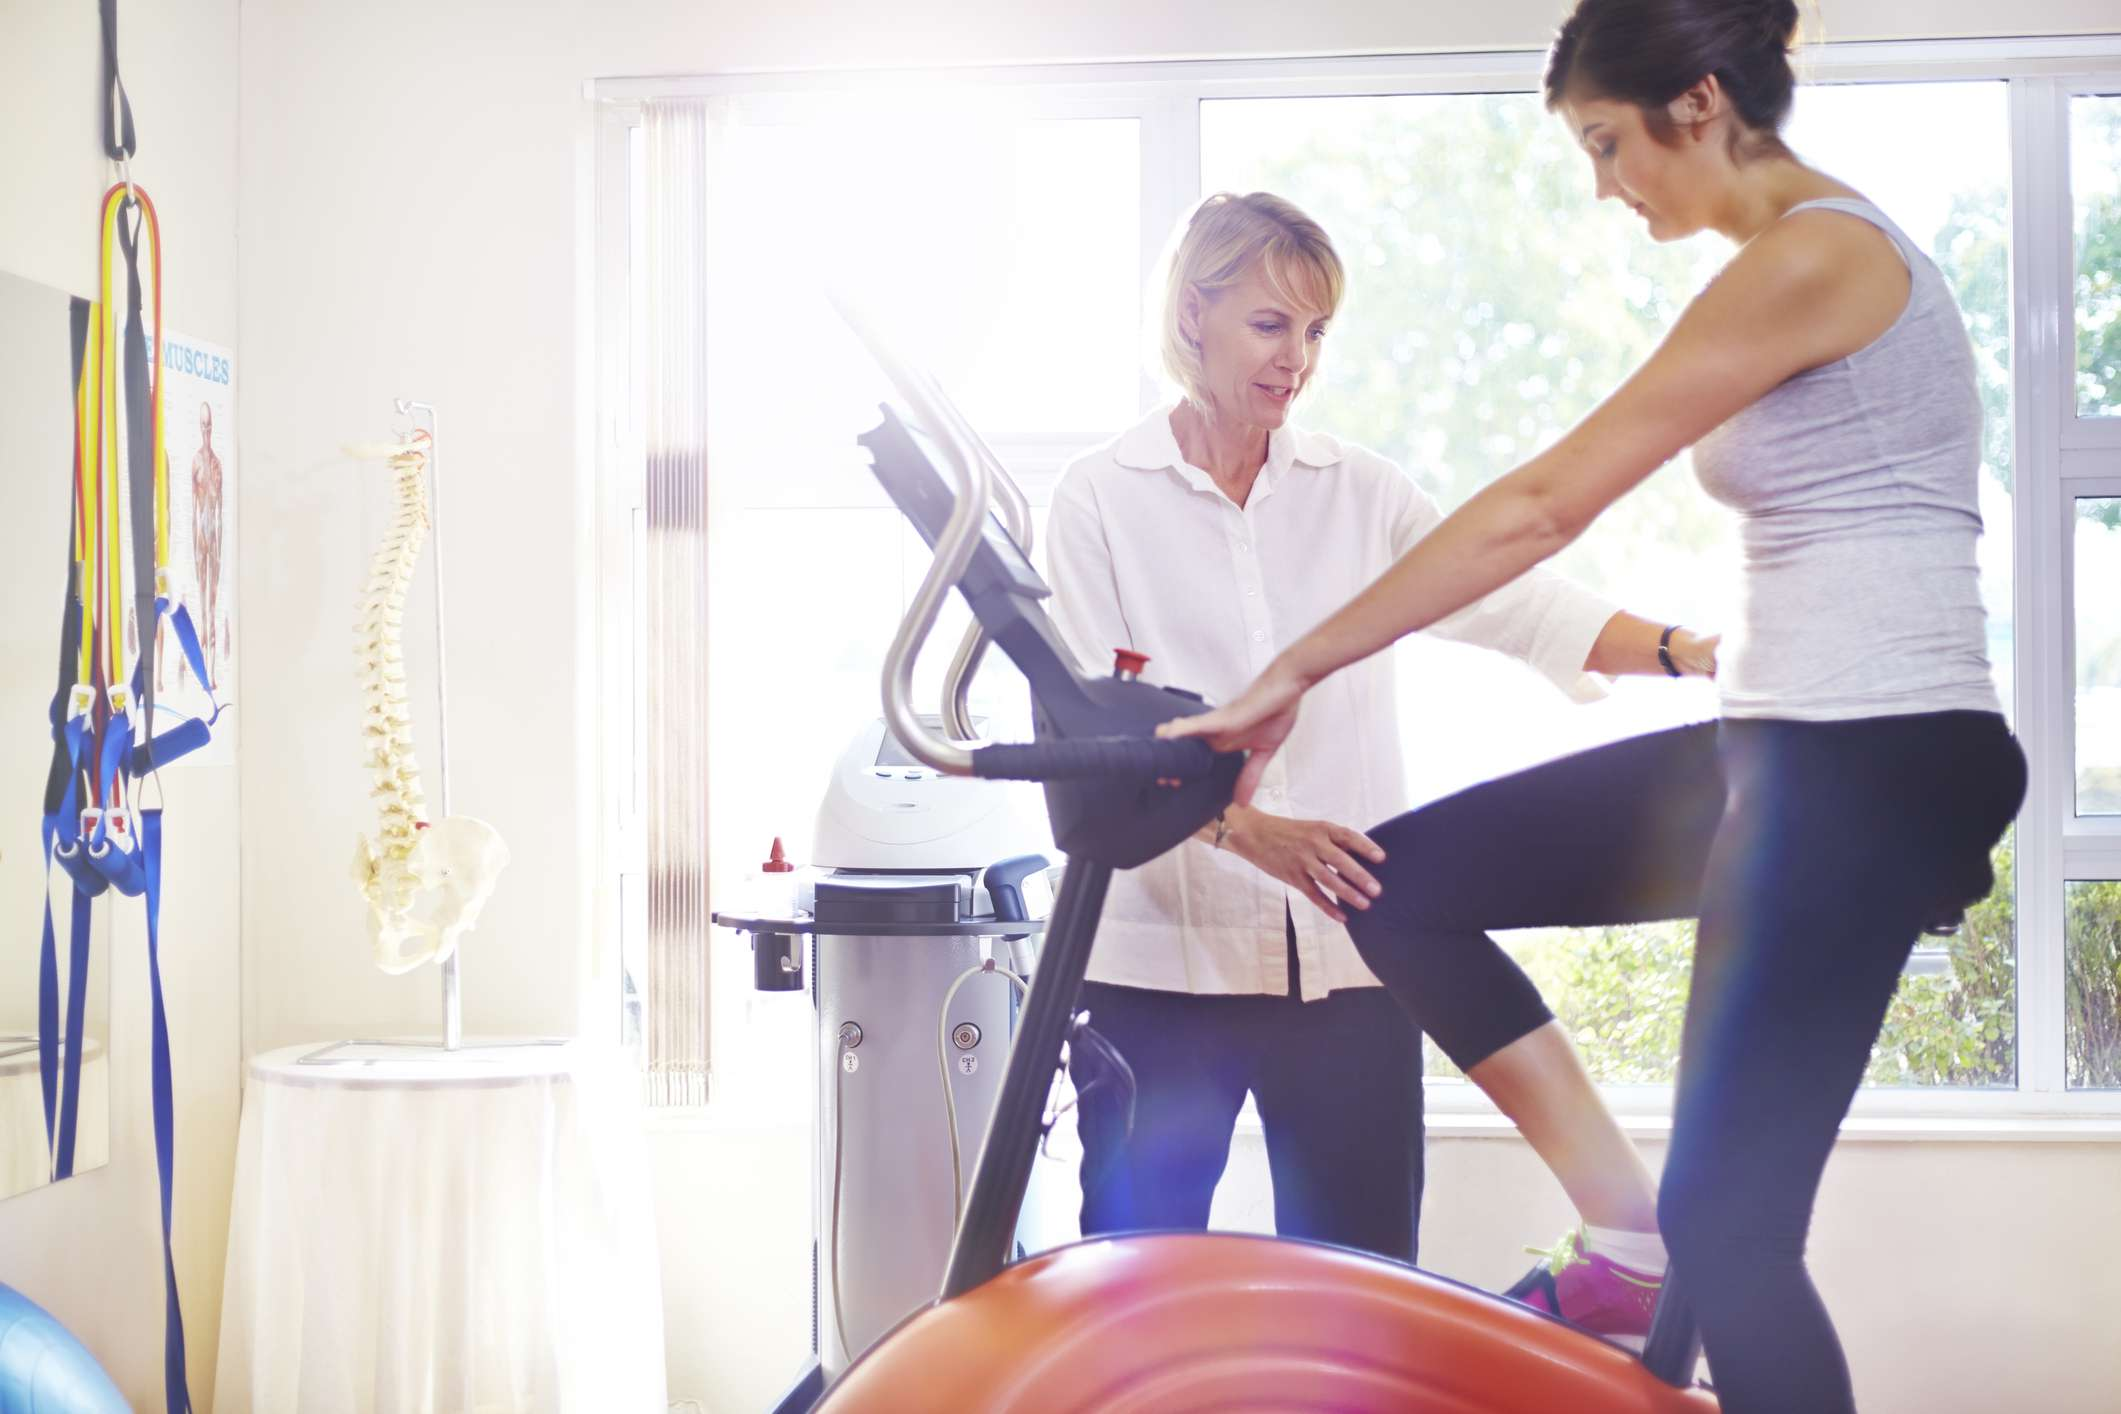 woman on stationary bike with physical therapist giving advice